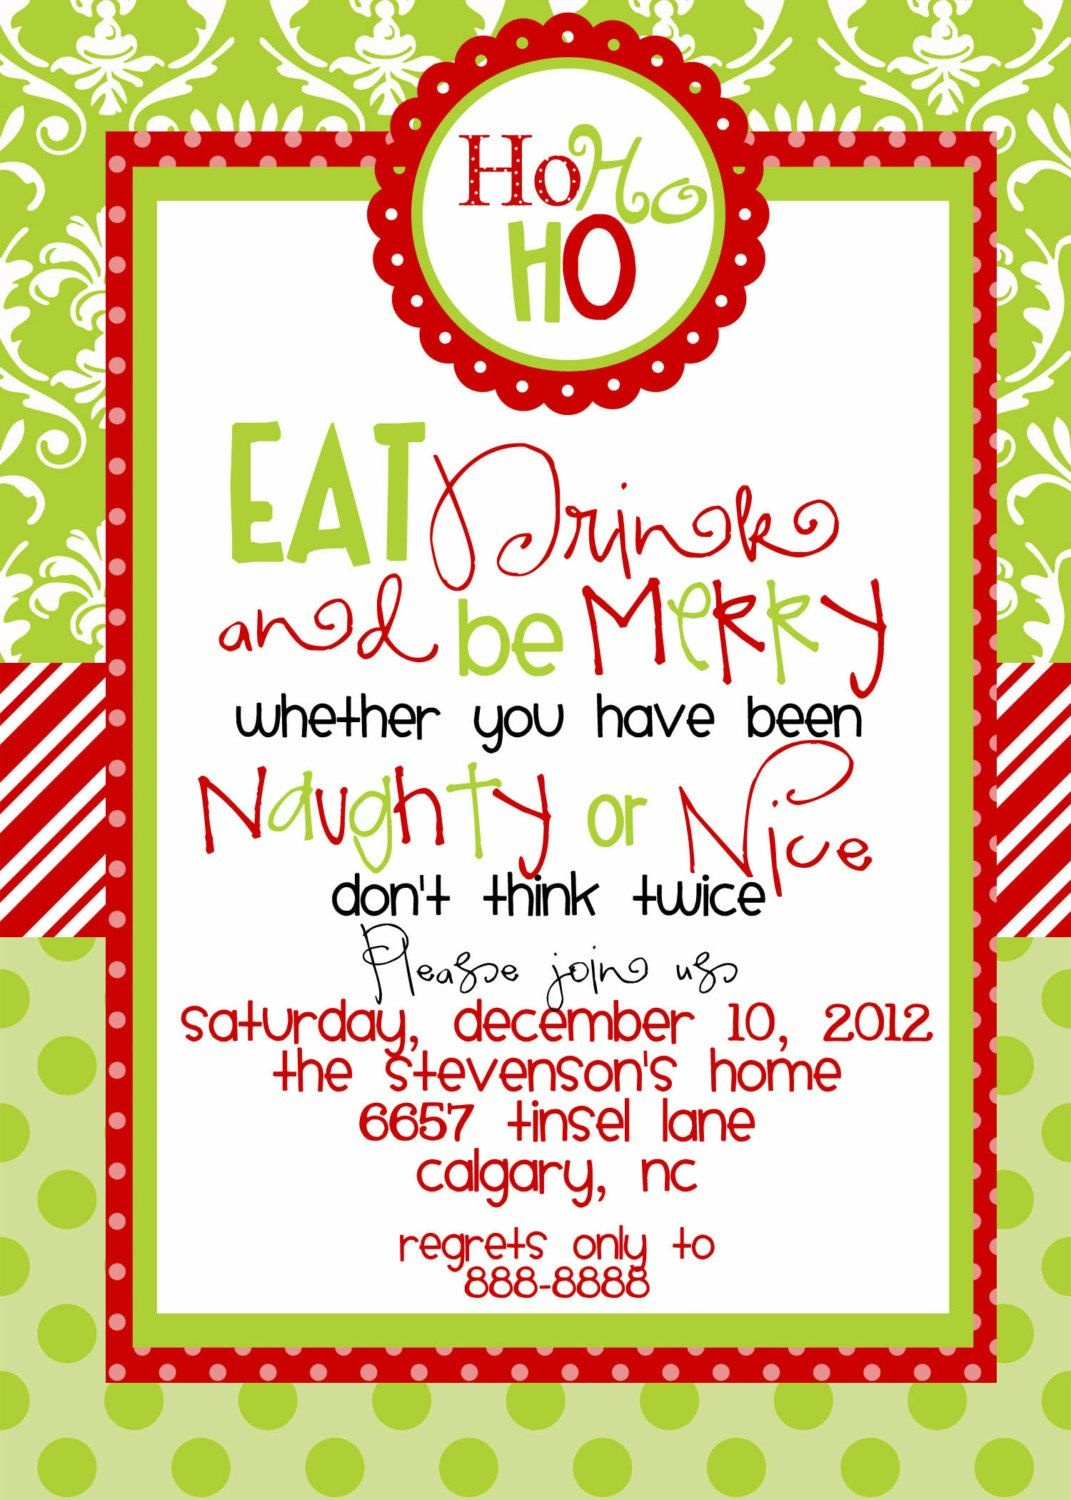 Custom Designed Christmas Party Invitations Eat Drink And Be Merry - Christmas Party Invitation Templates Free Printable